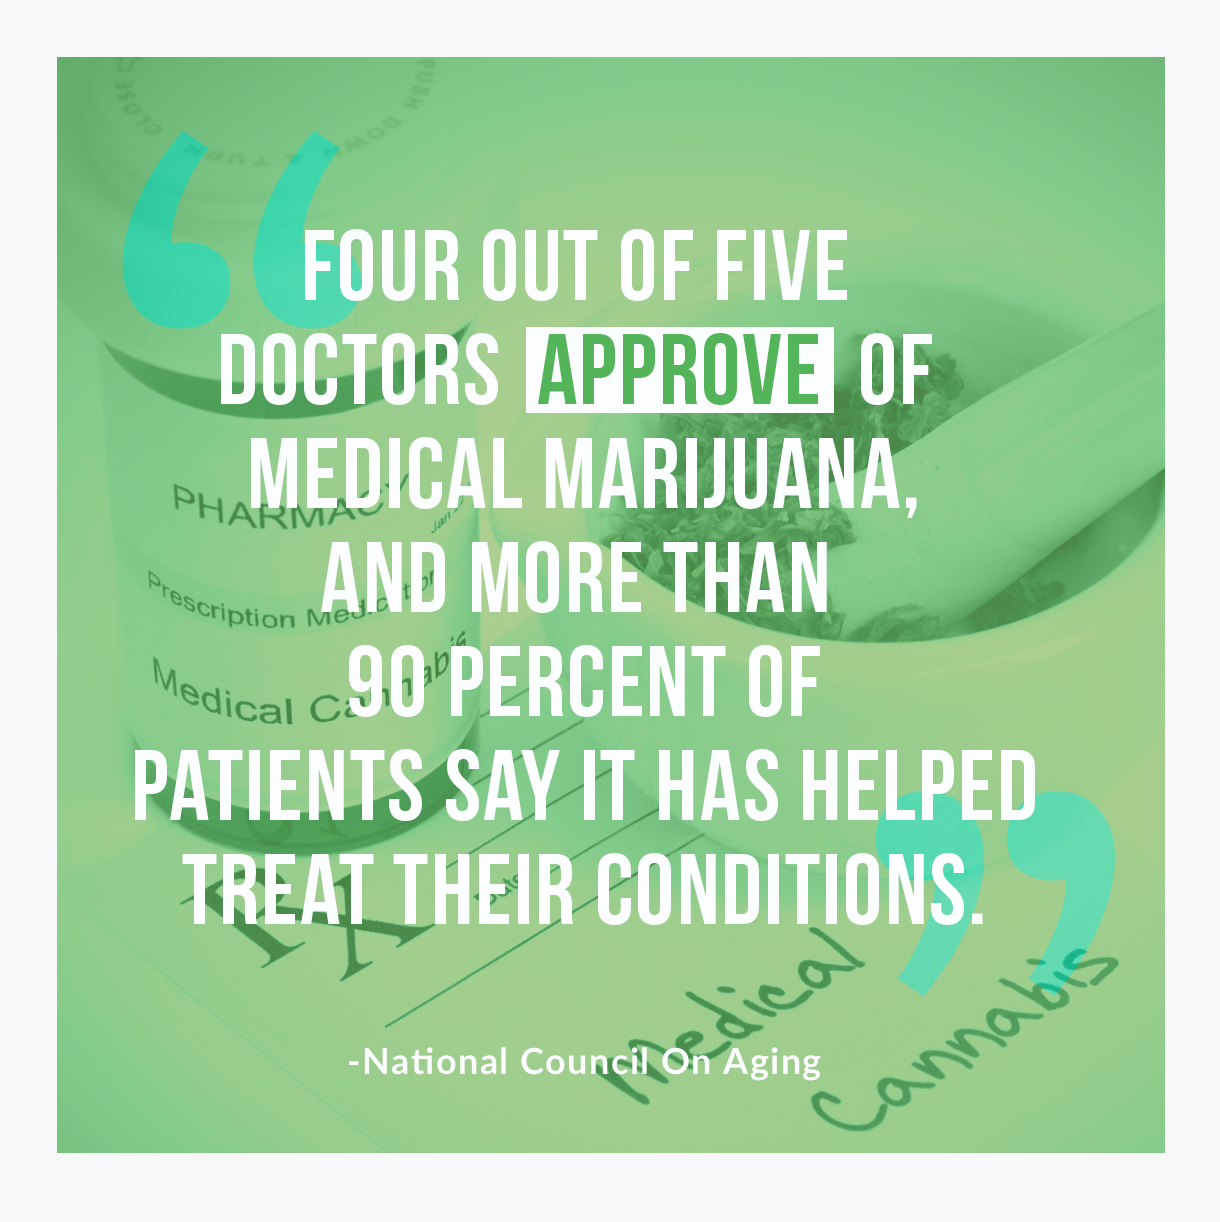 Four out of five doctors approve of medical marijuana, and more than 90 percent of patients say it has helped treat their conditions - national council on aging